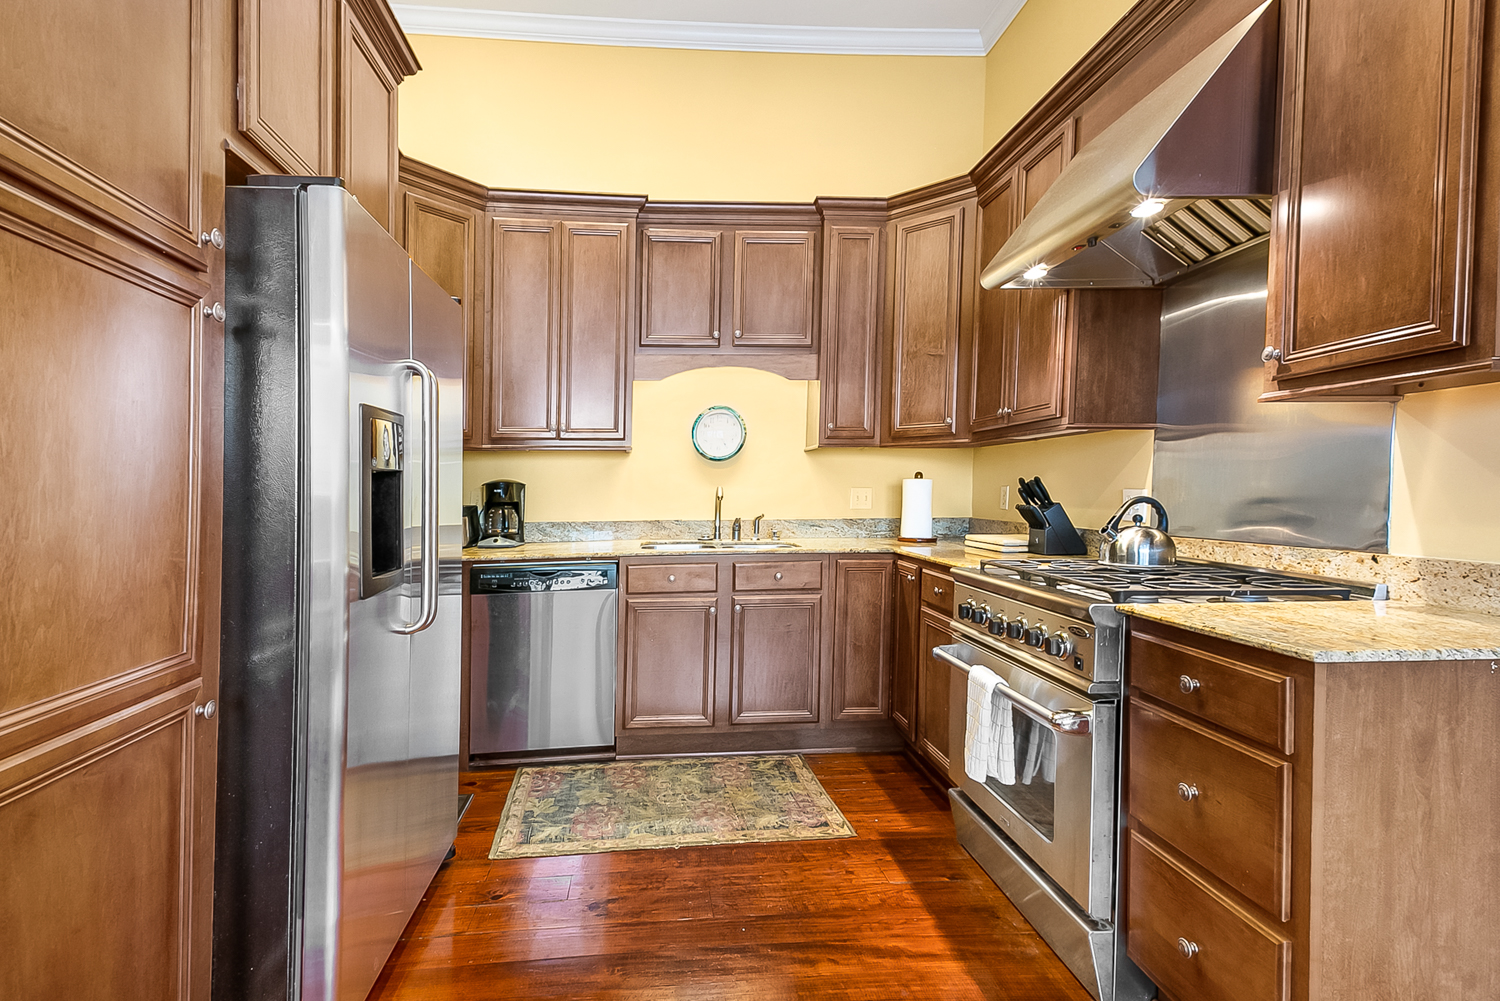 Garden District, House, 2 beds, 2.5 baths, $3500 per month New Orleans Rental - devie image_3